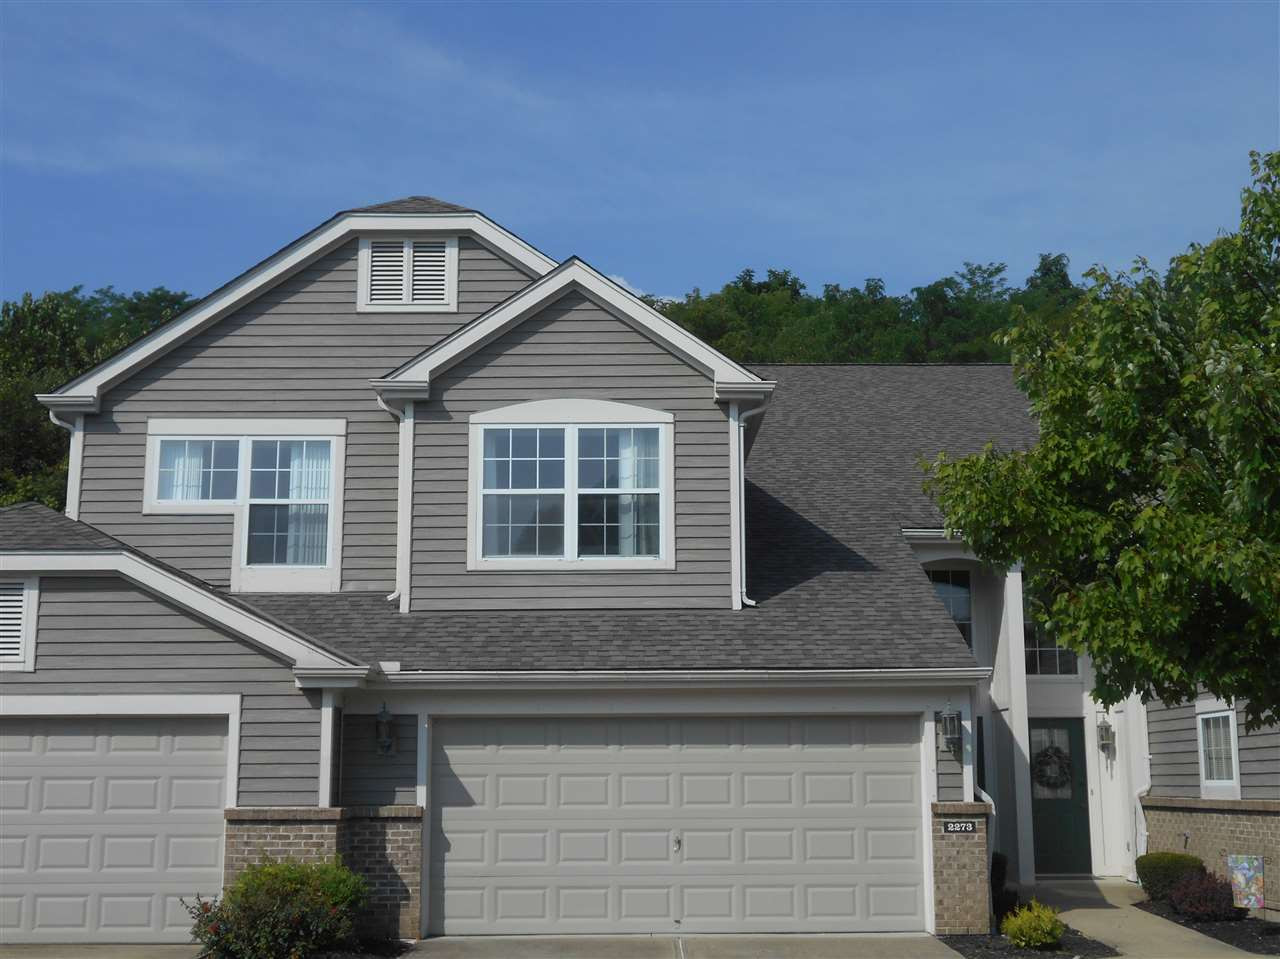 Photo 1 for 2273 Edenderry Dr Crescent Springs, KY 41017